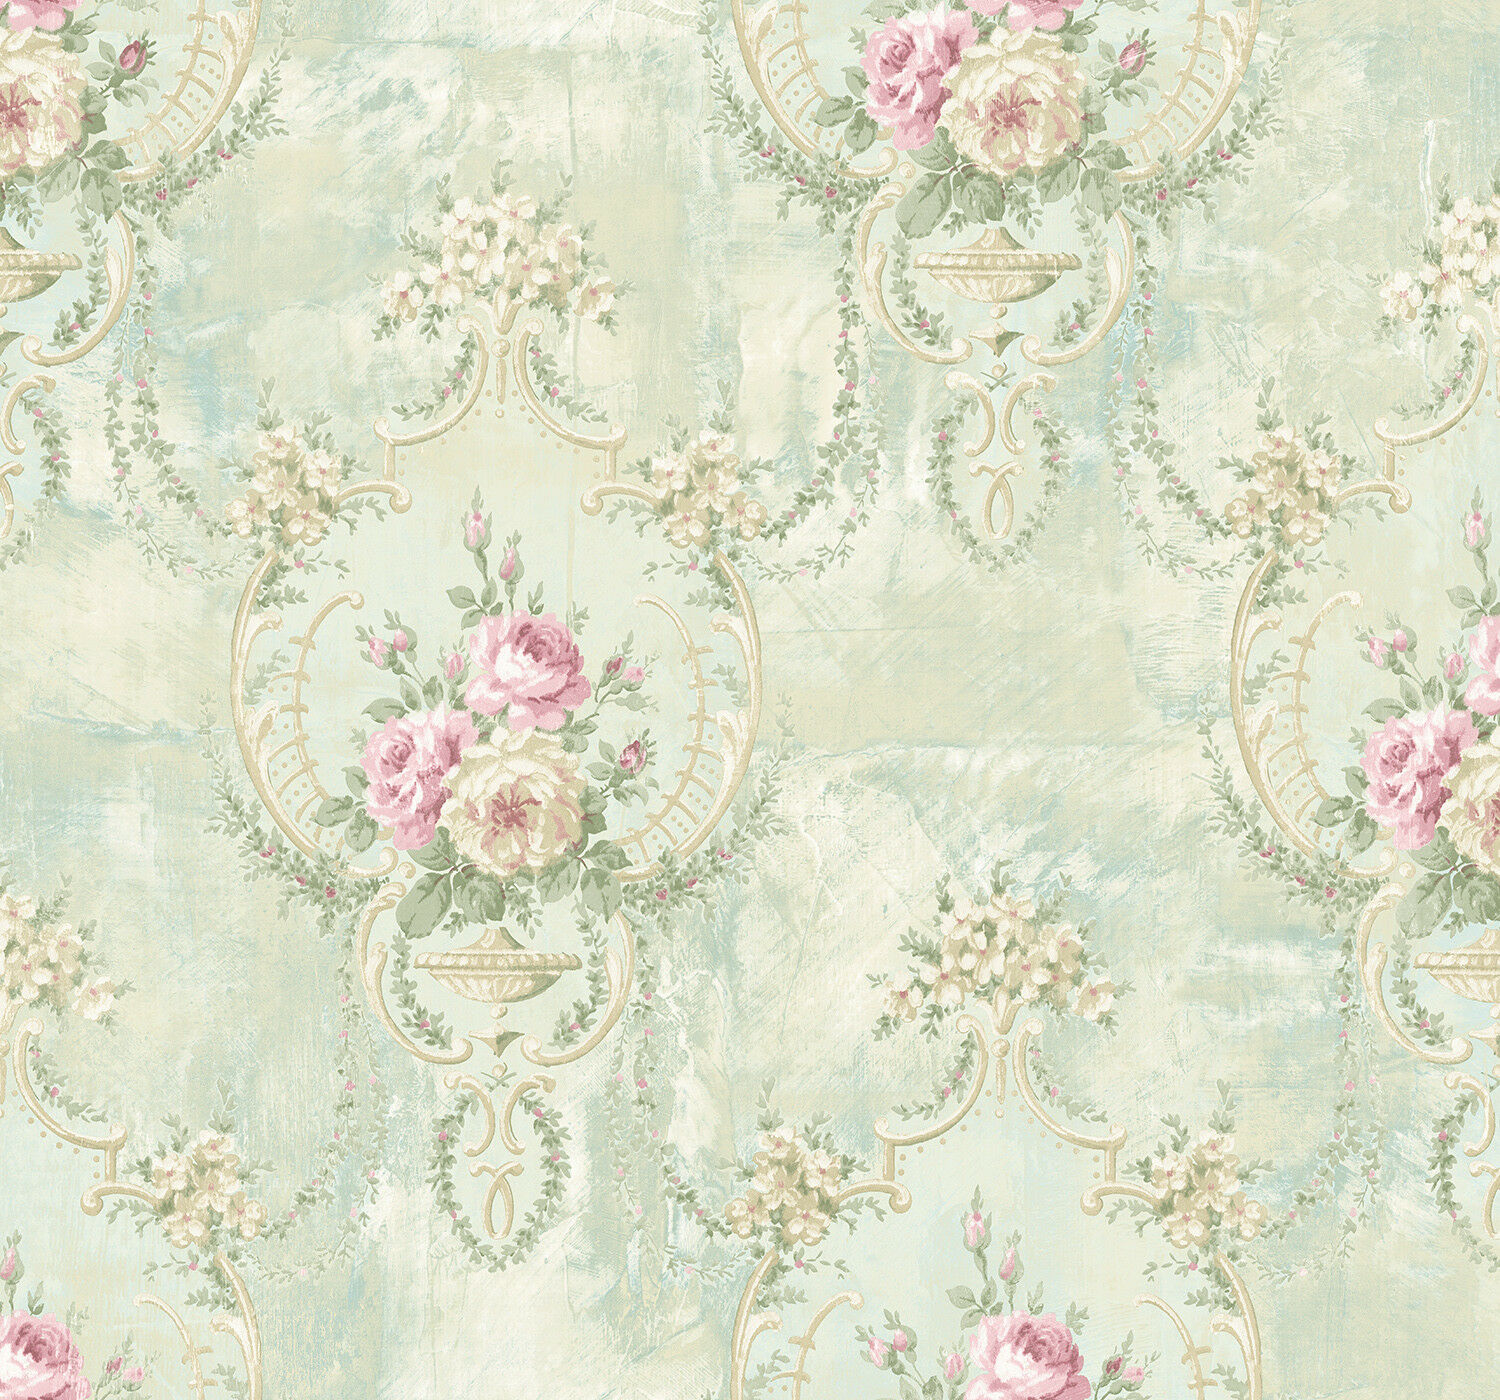 Damask Wallpaper Floral Blue Cream Pink Green Victorian Style